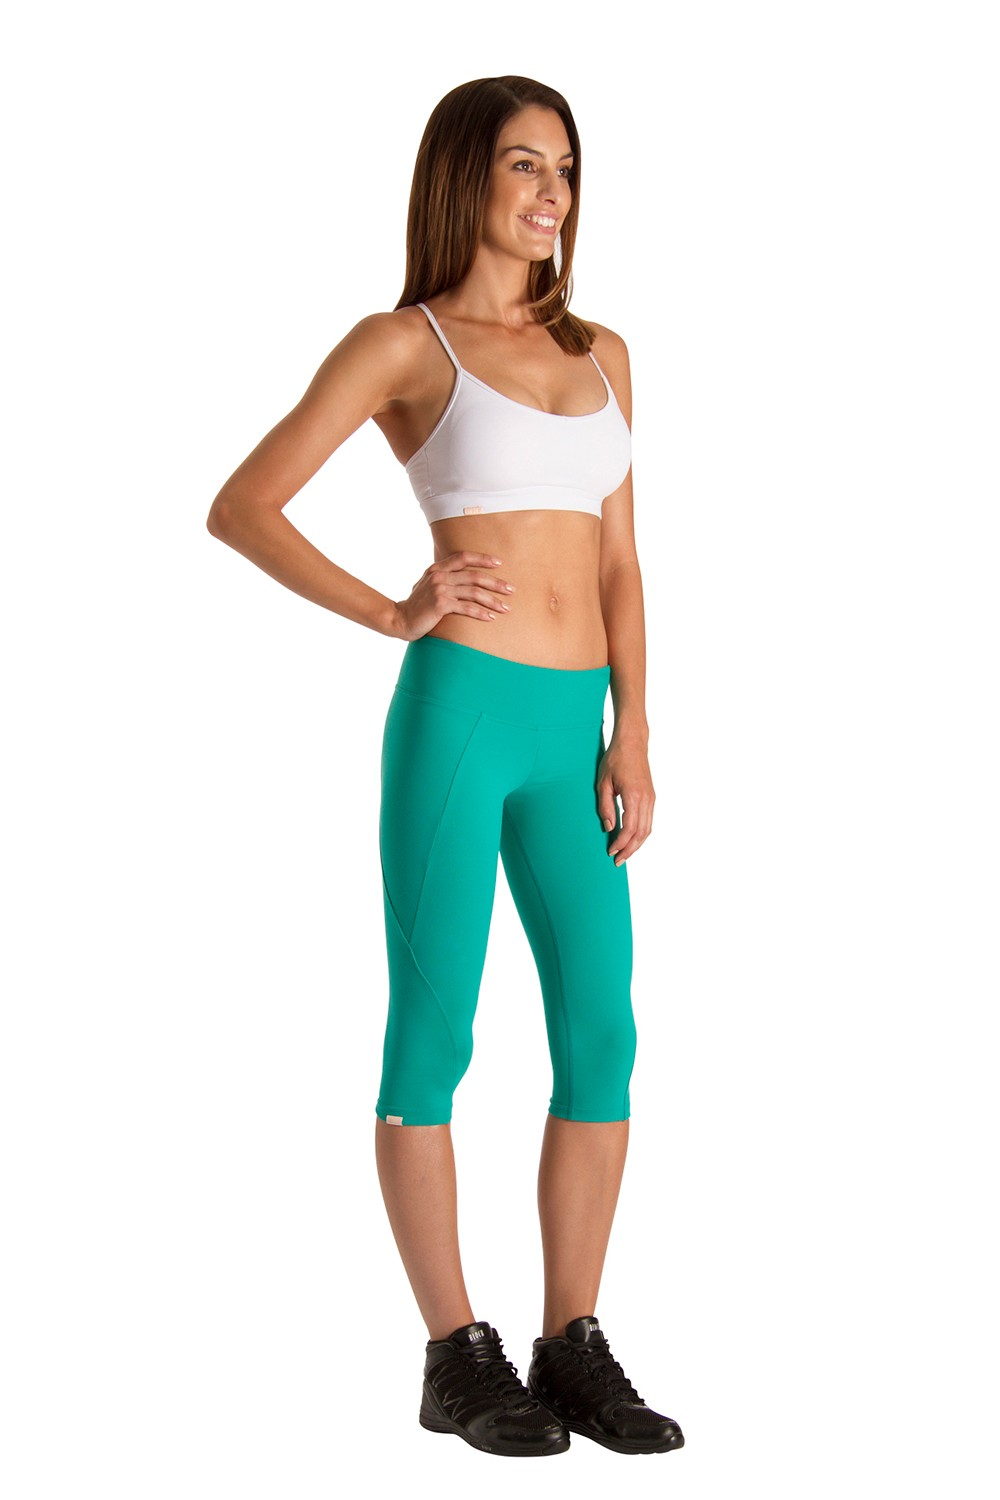 1/2 Leggings Women's Bottoms